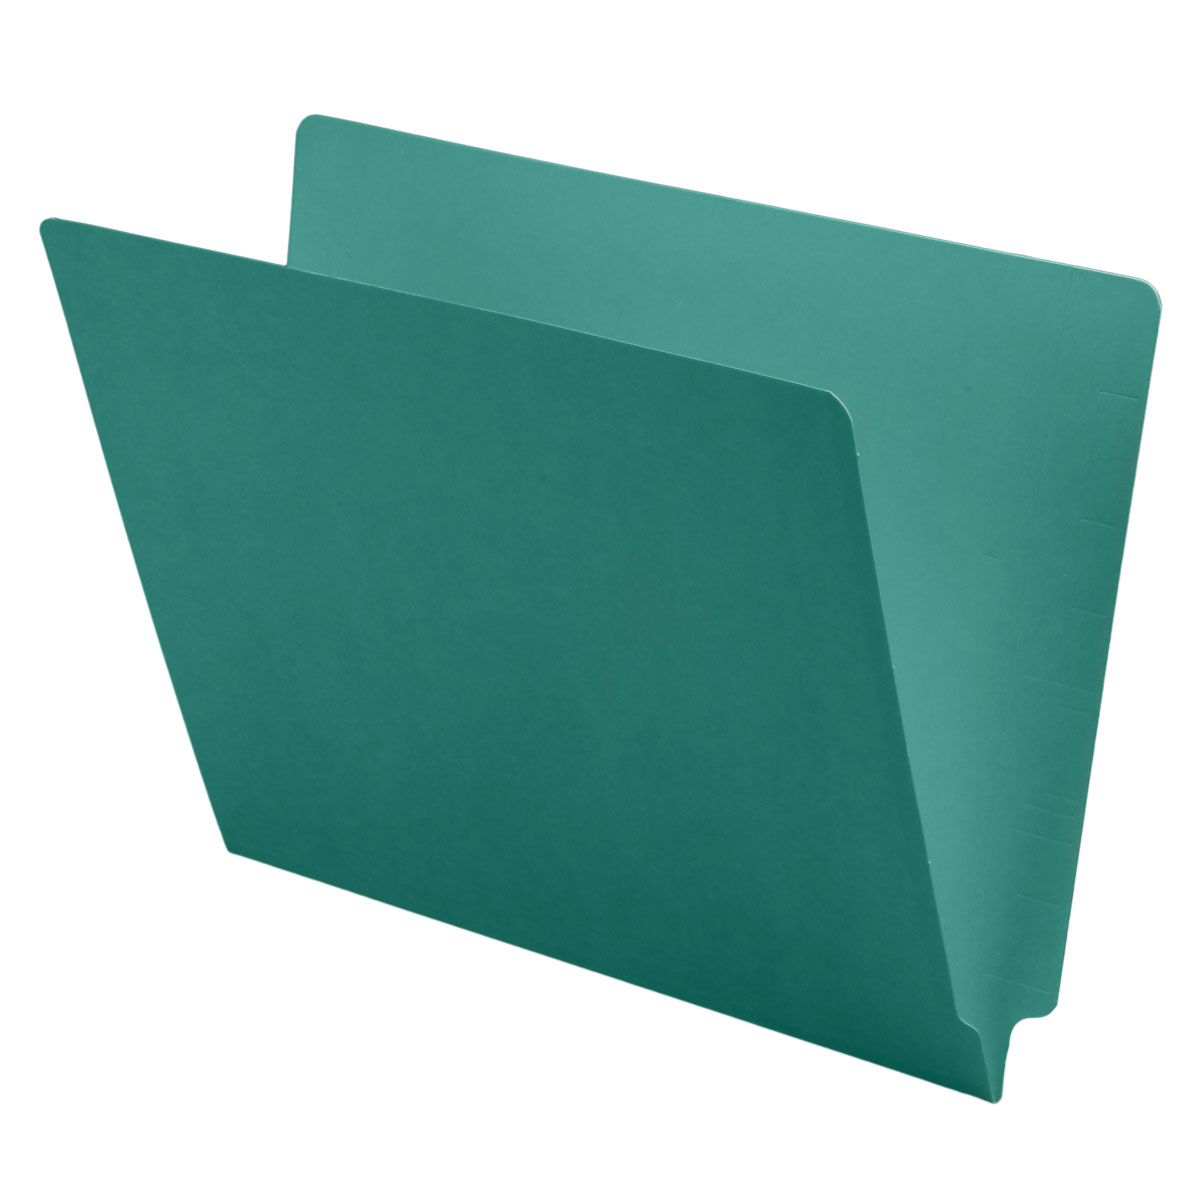 S-1500-STBLU - 11 pt Color Folders, Full Cut 2-Ply End Tab, Letter Size, Sterling Blue (Box of 100)